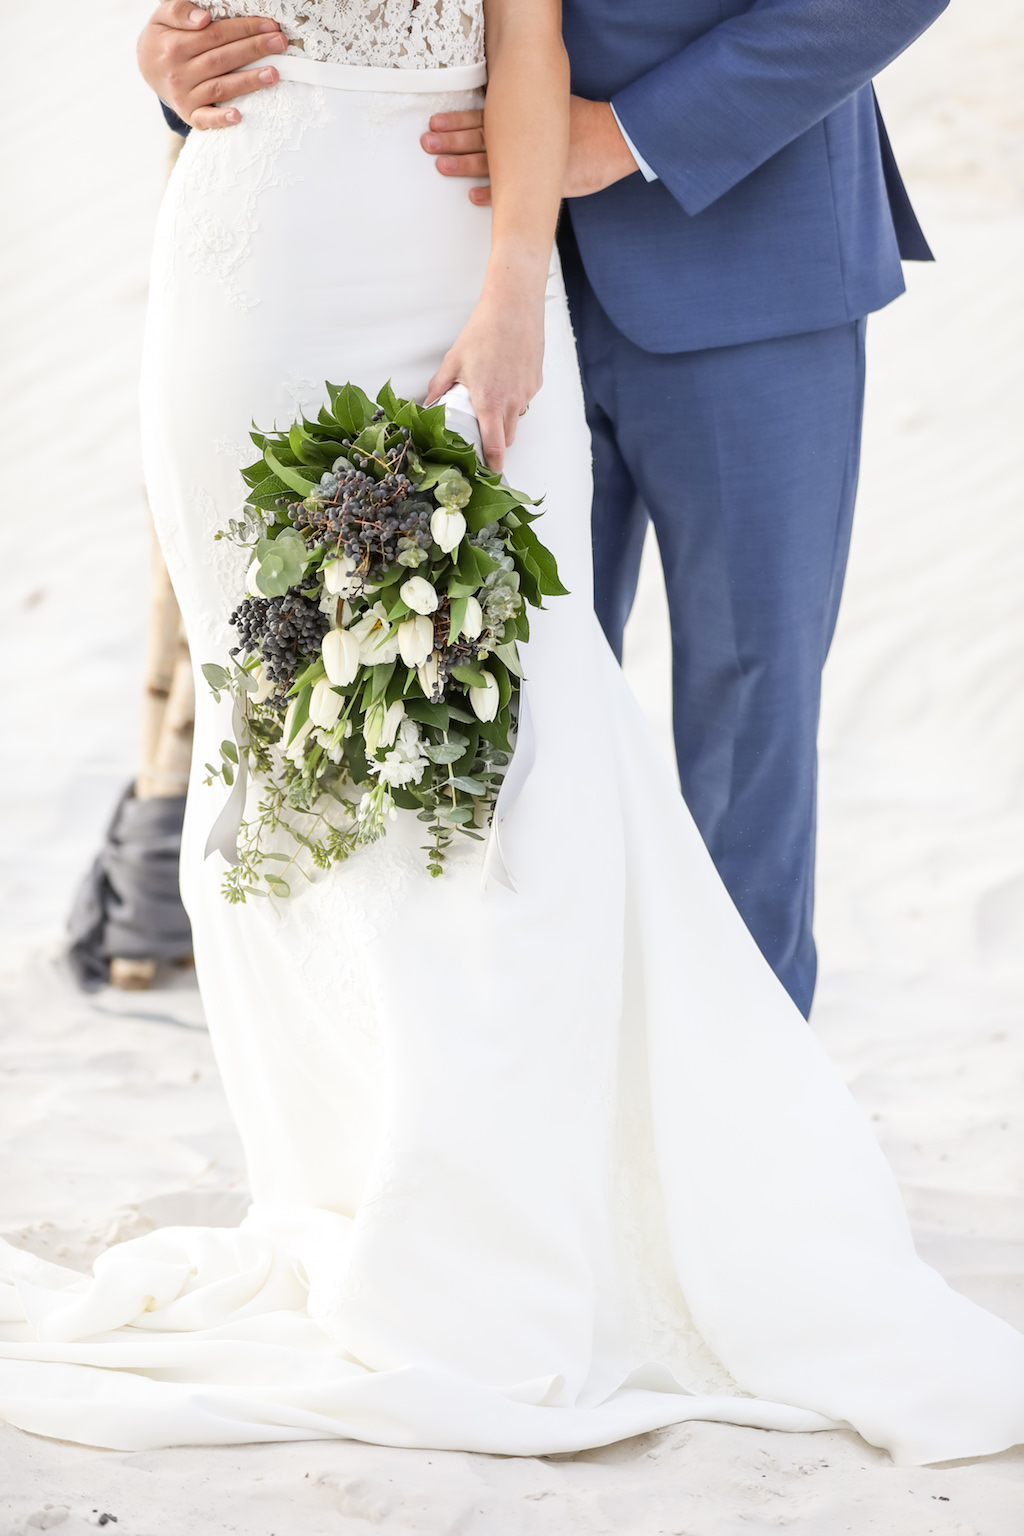 Outdoor Beach Wedding Portrait, Bride in Lace Applique Bodice Dress with Greenery Bouquet with White Tulips and Blue Berries and Greenery, Groom in Blue Suit   Clearwater Beach Wedding Photographer Lifelong Photography Studios